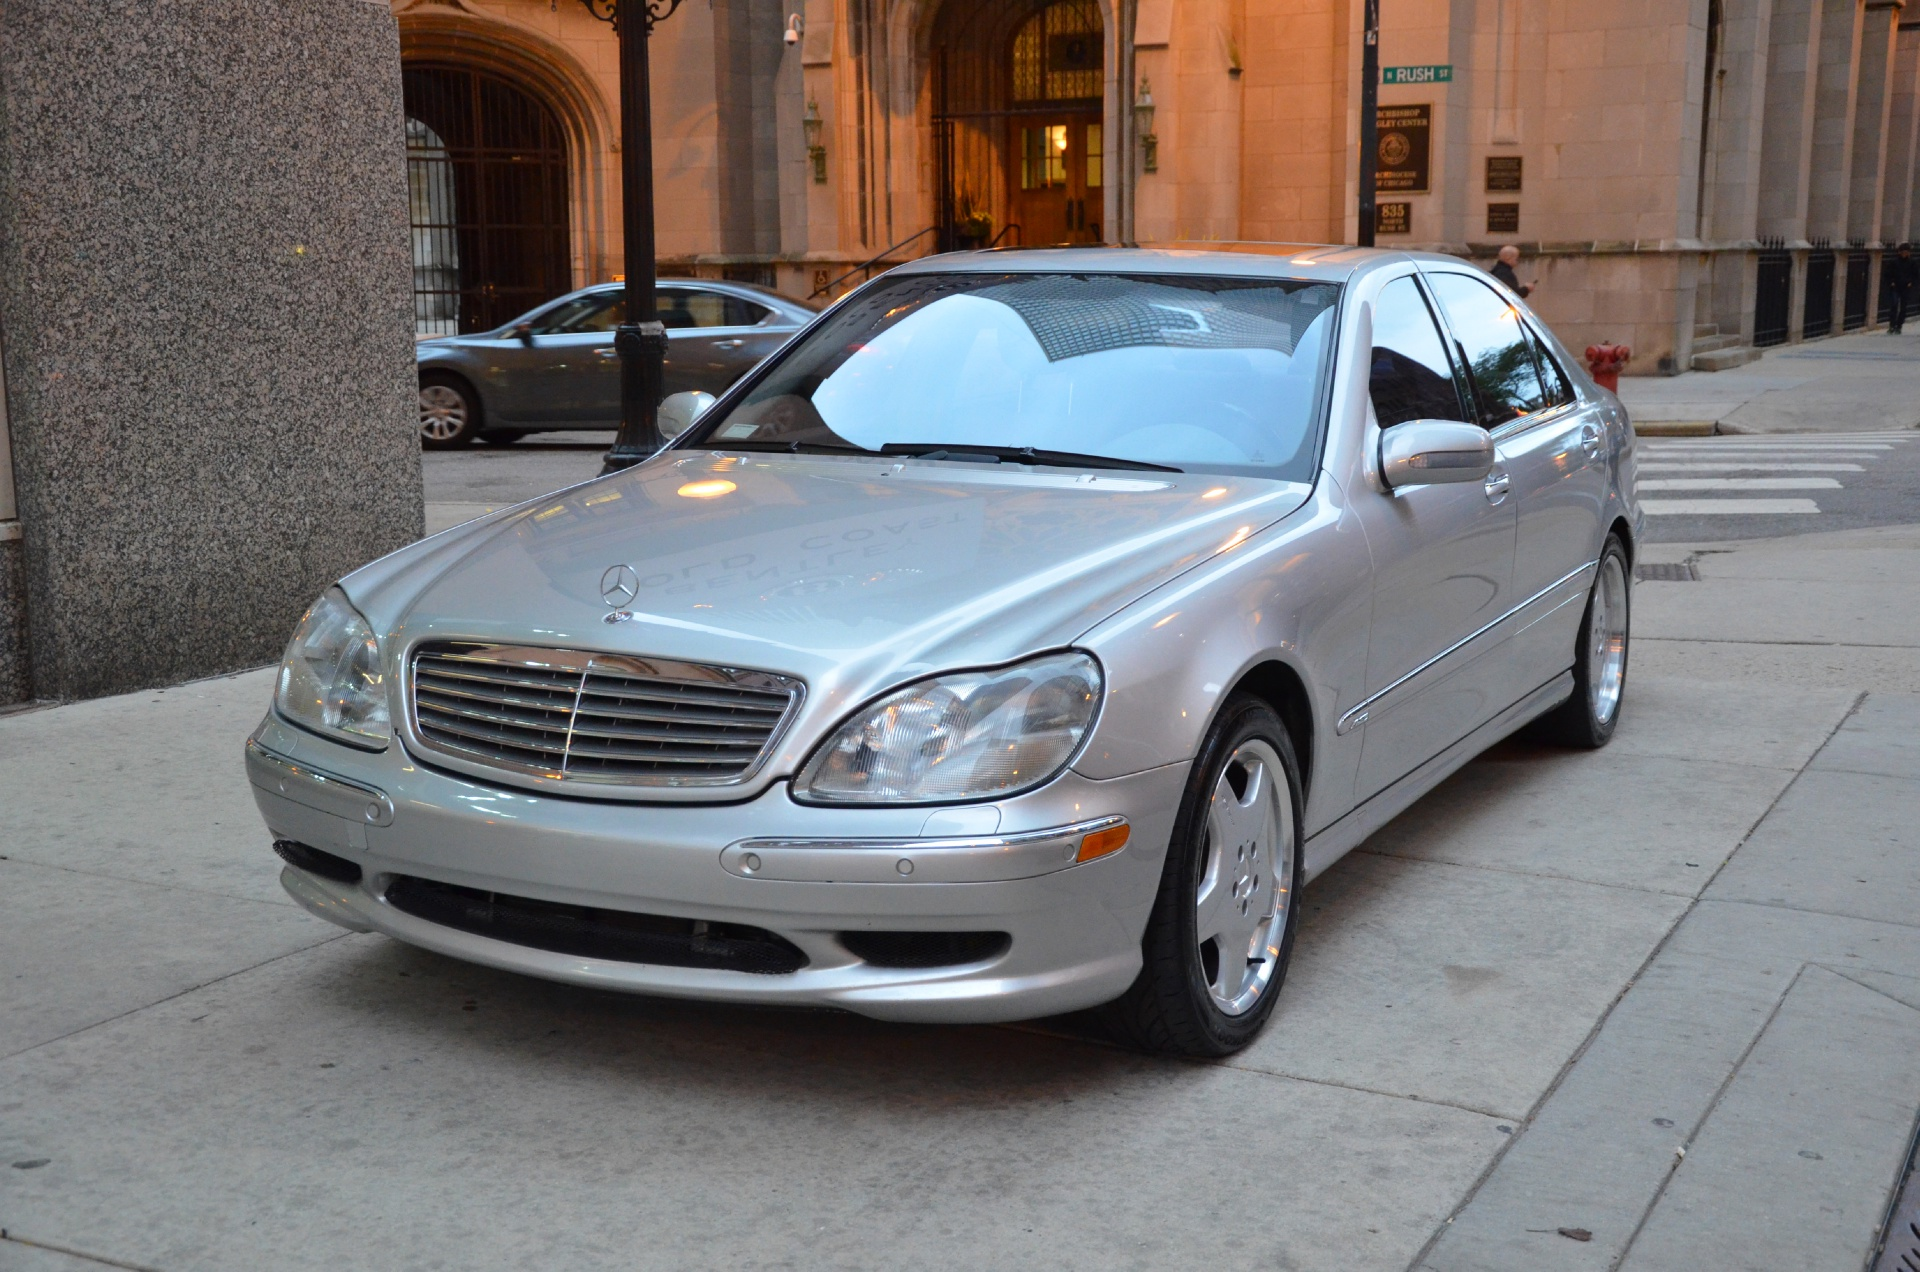 2001 mercedes benz s class s600 used bentley used rolls royce used lamborghini used bugatti. Black Bedroom Furniture Sets. Home Design Ideas